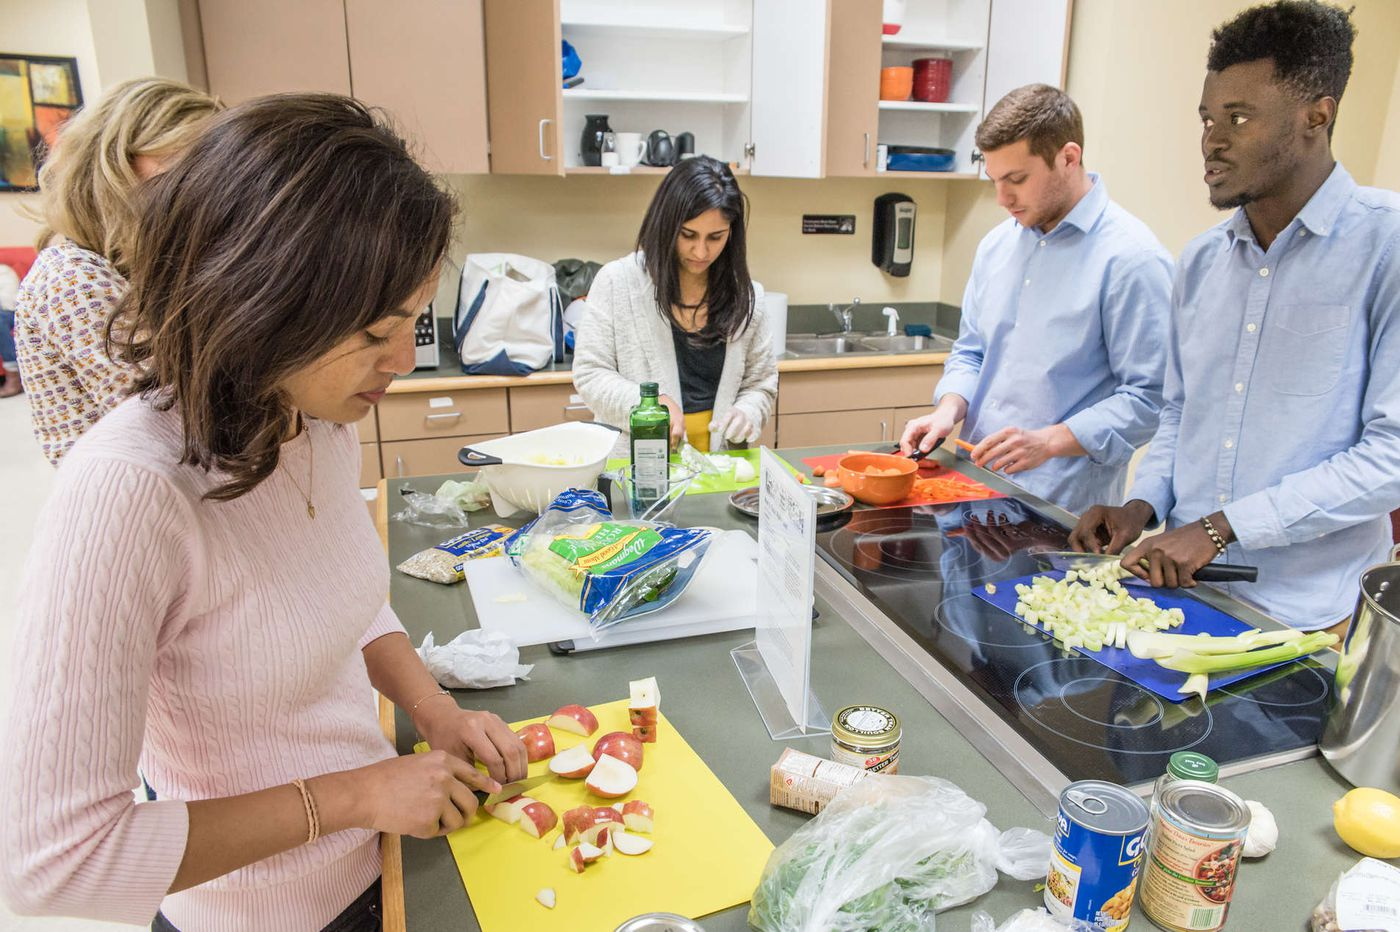 Doctor dishes out the science behind healthy eating to med students